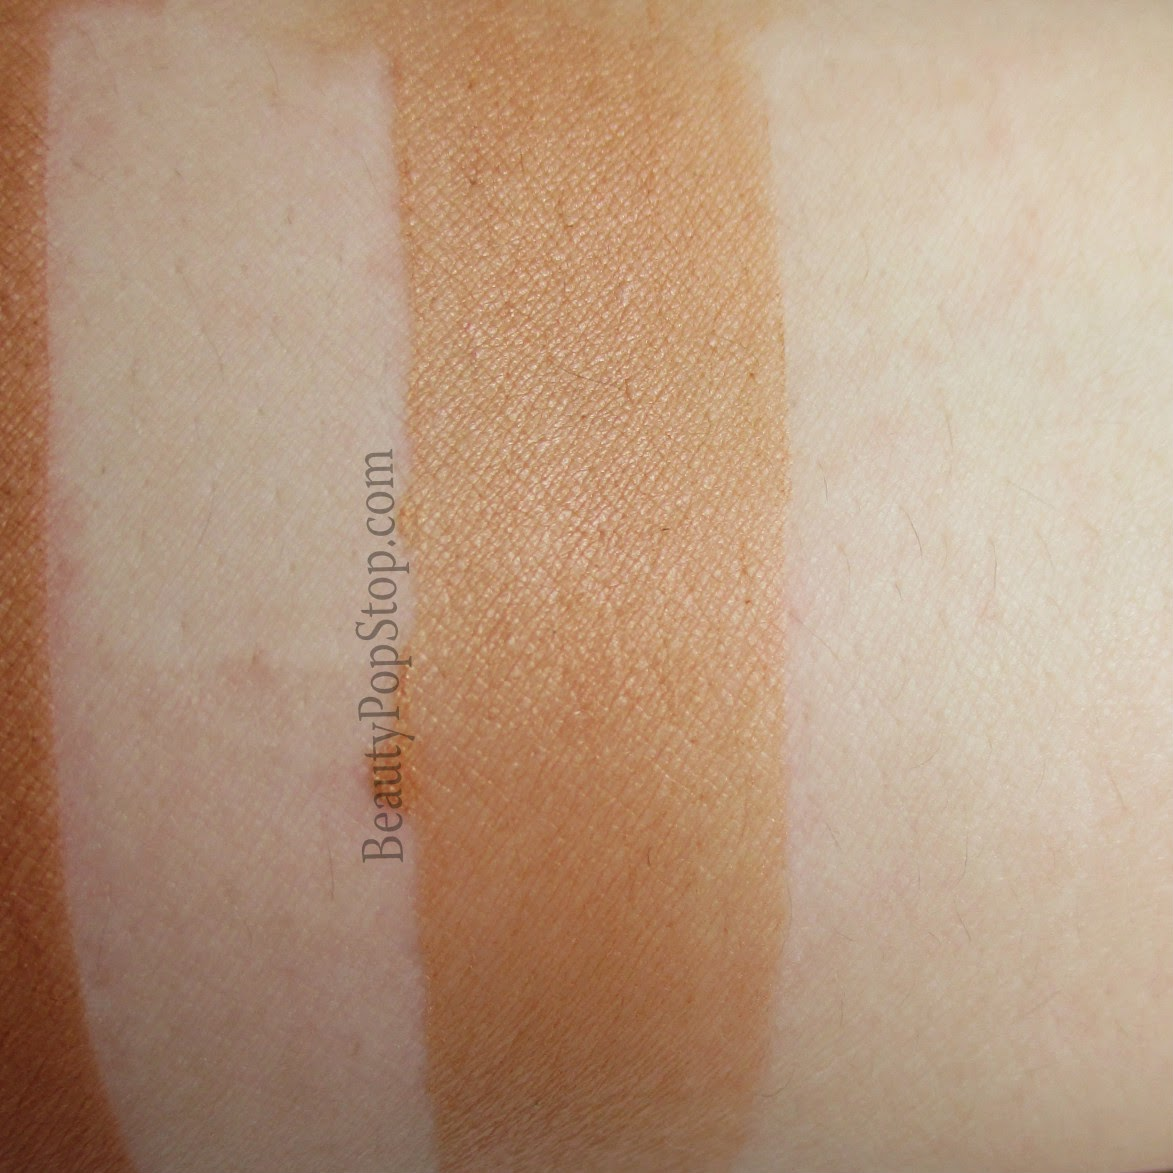 Vapour Solar Translucent Bronzer in Mirage swatch